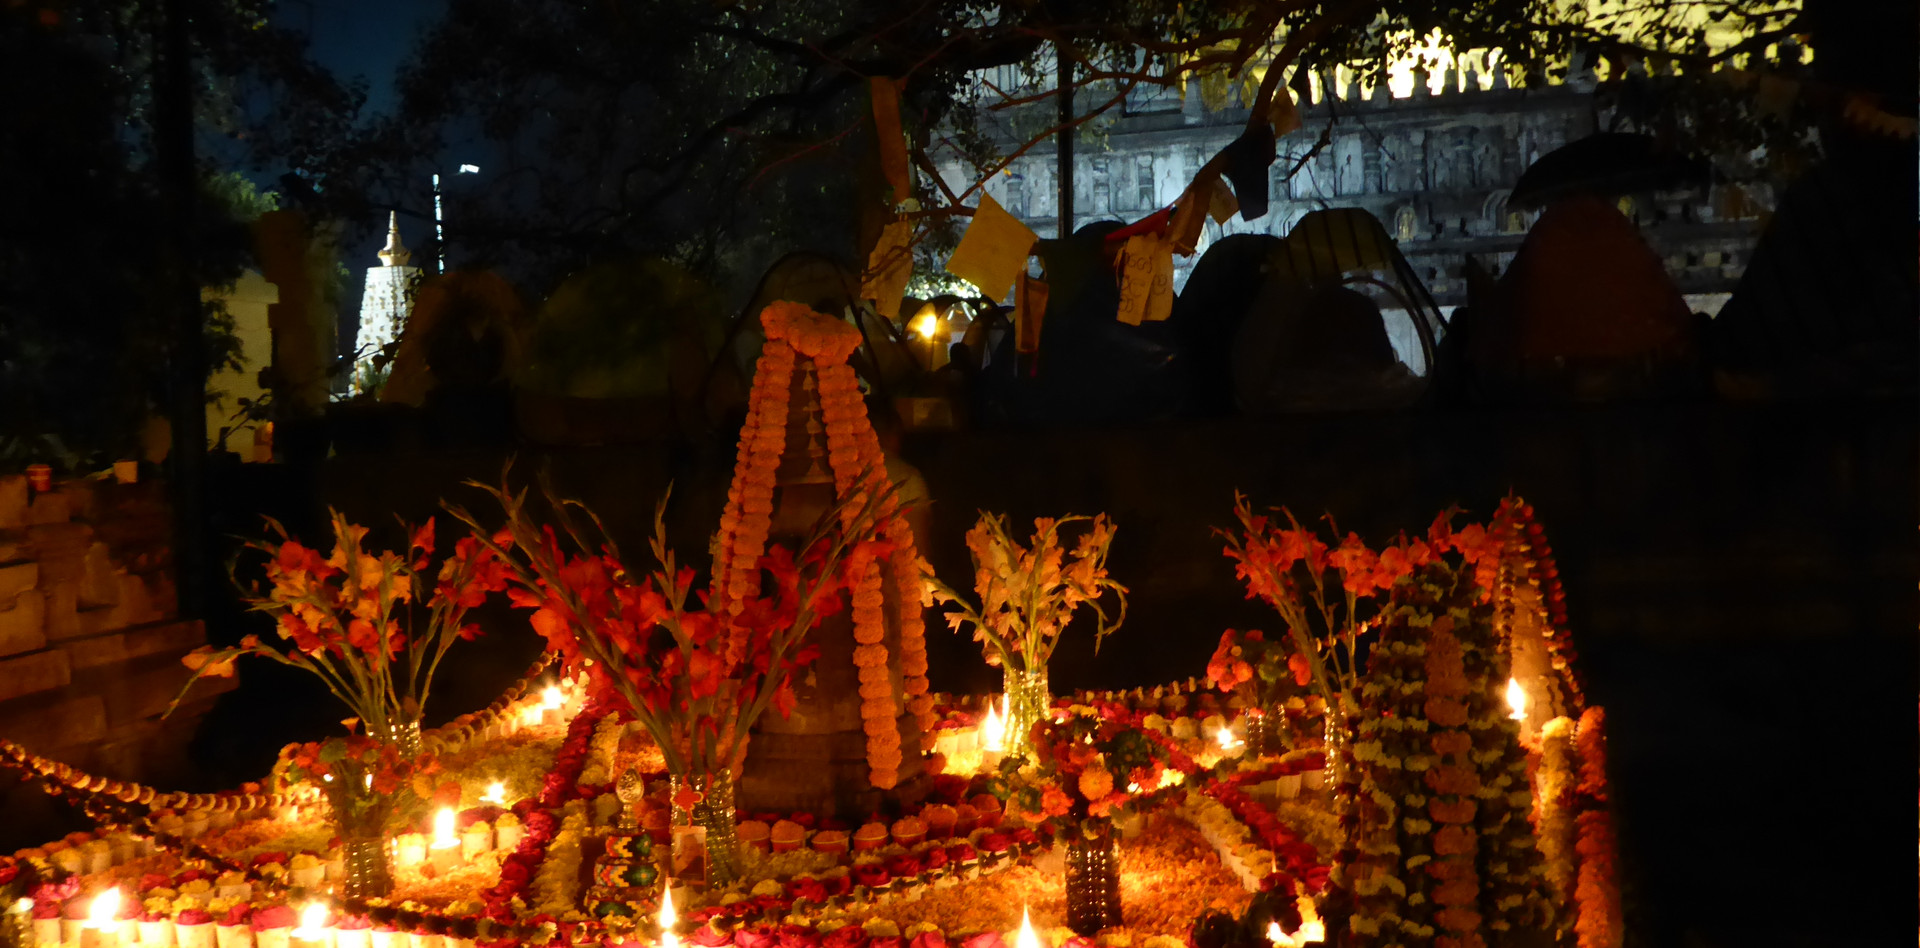 Night offerings in Bodhgaya